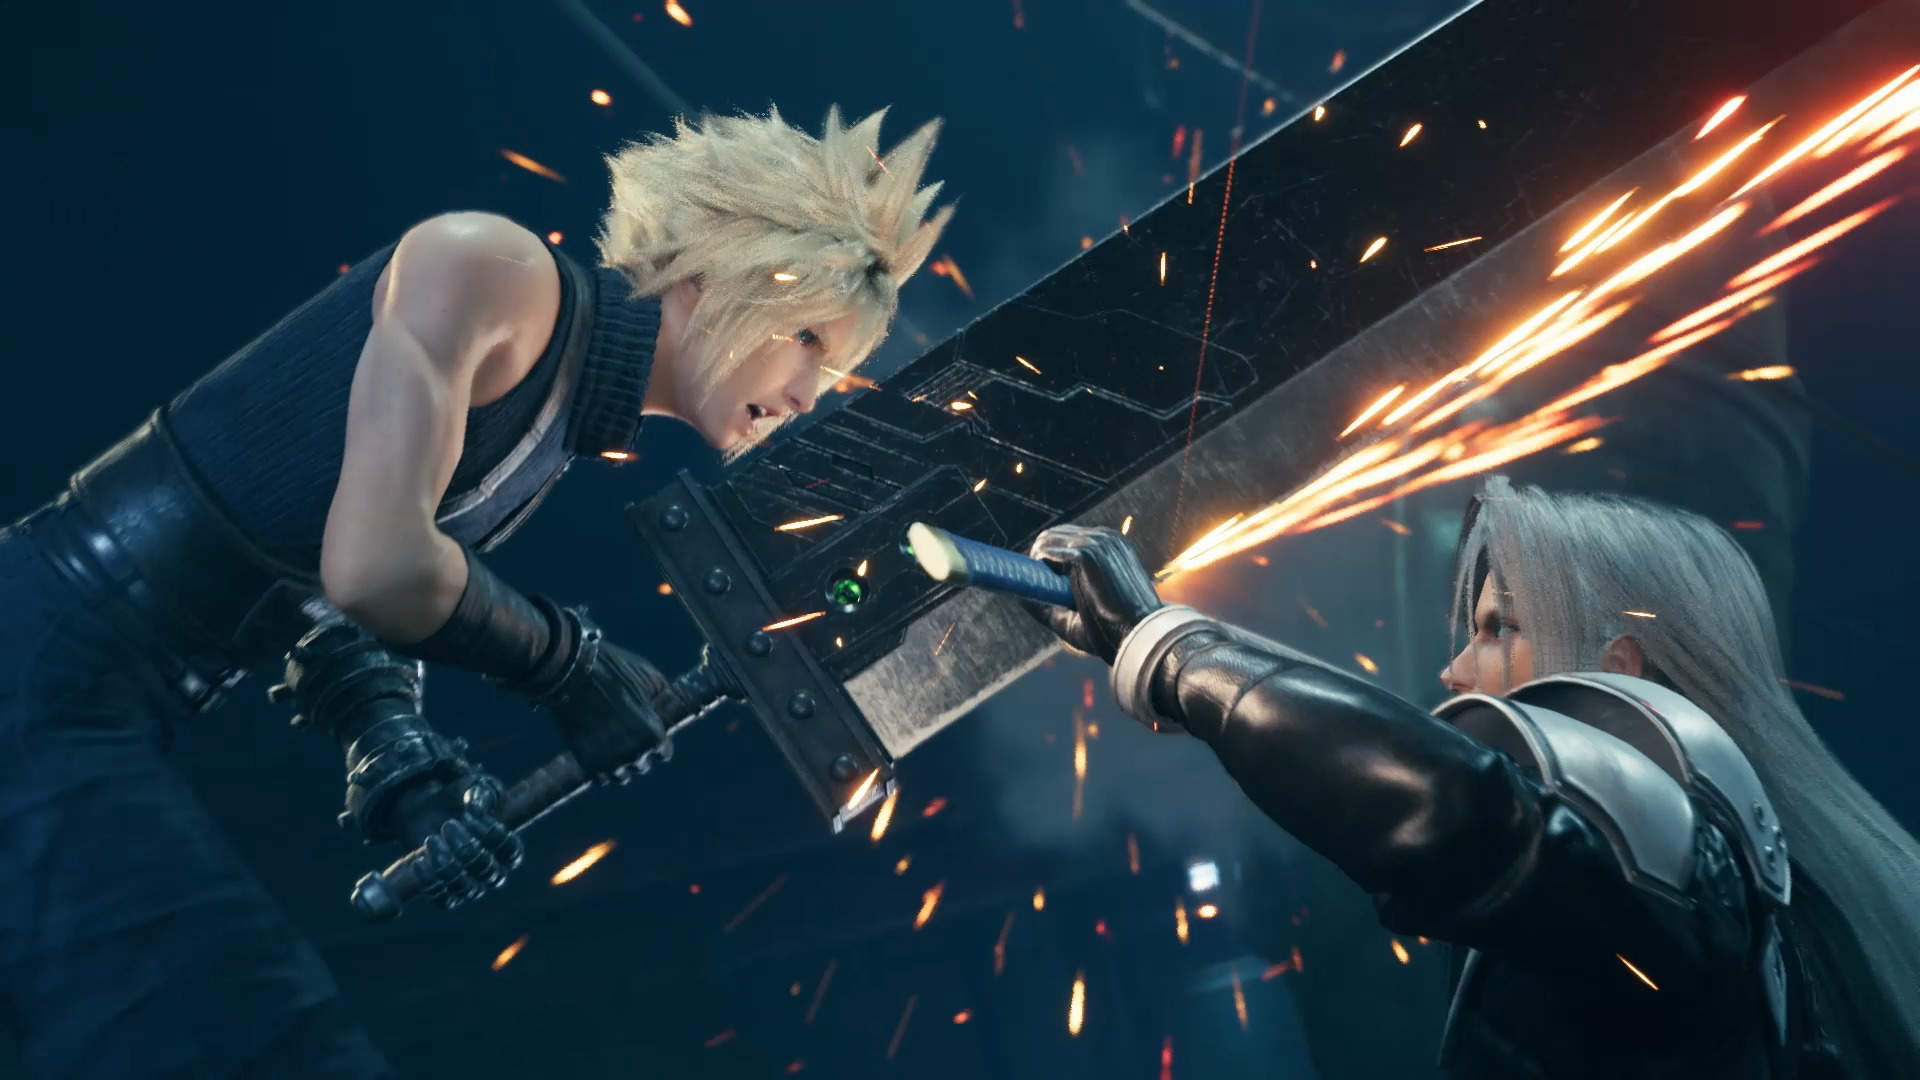 Final Fantasy 7 Remake DLC Will Be On Butterfingers?